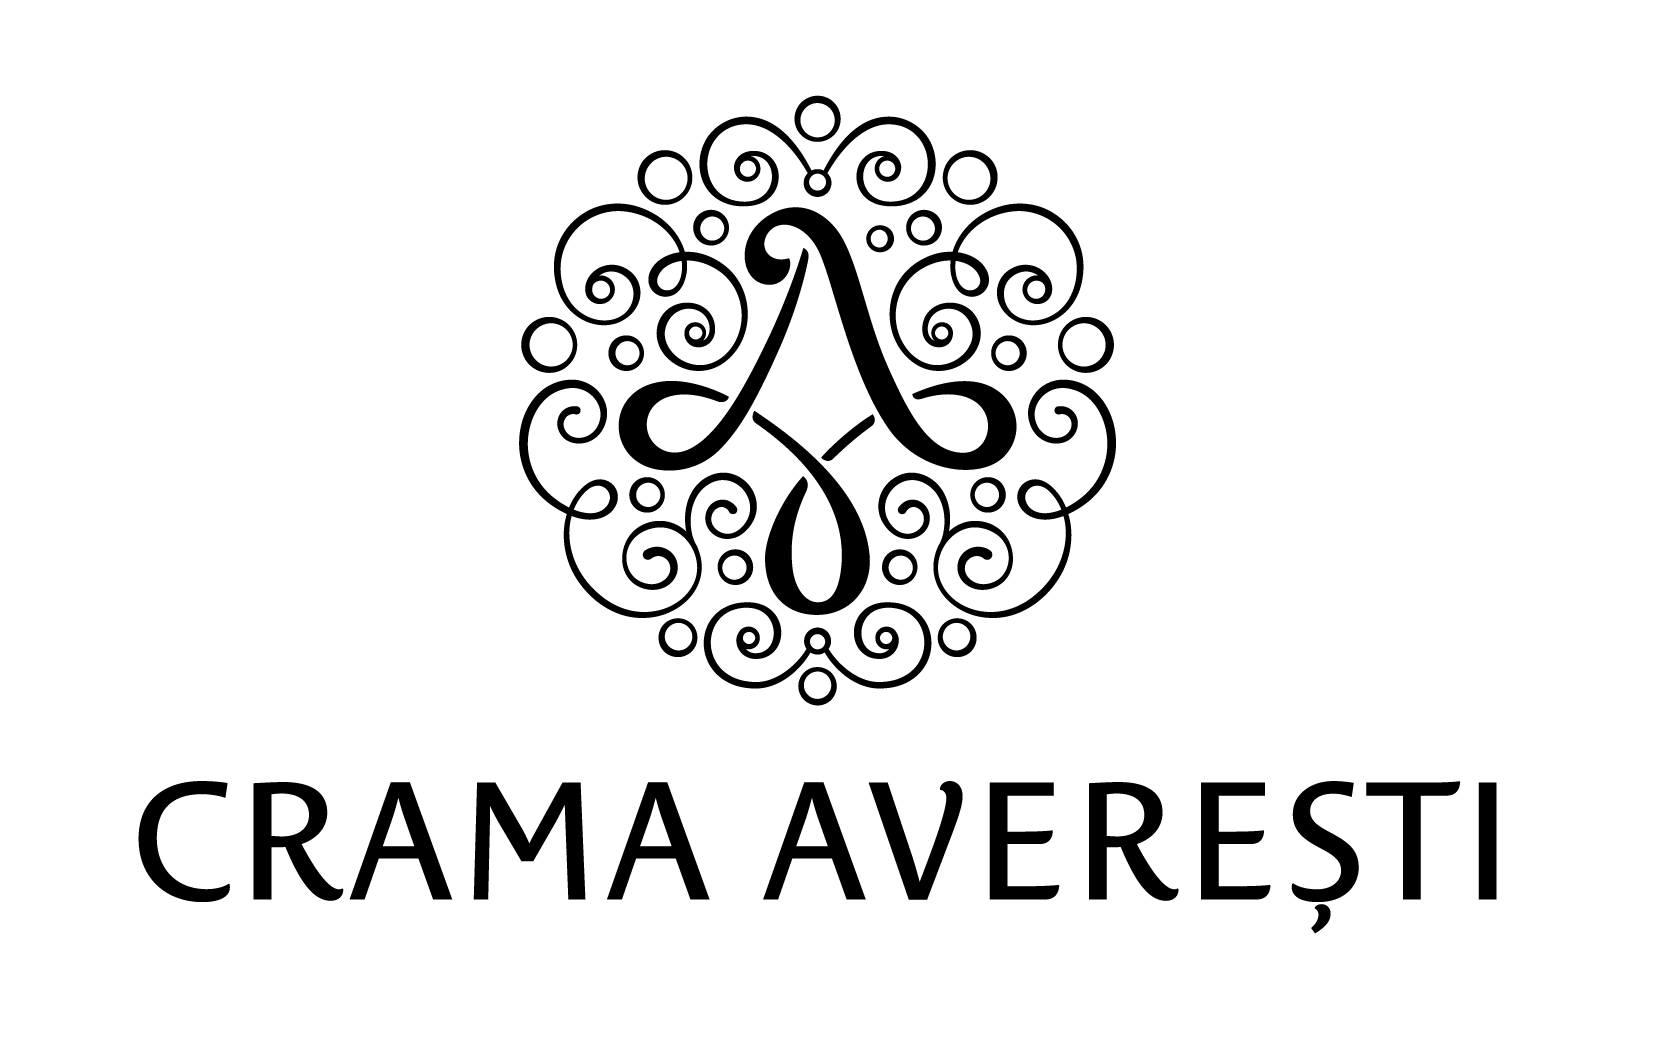 Crama Averesti